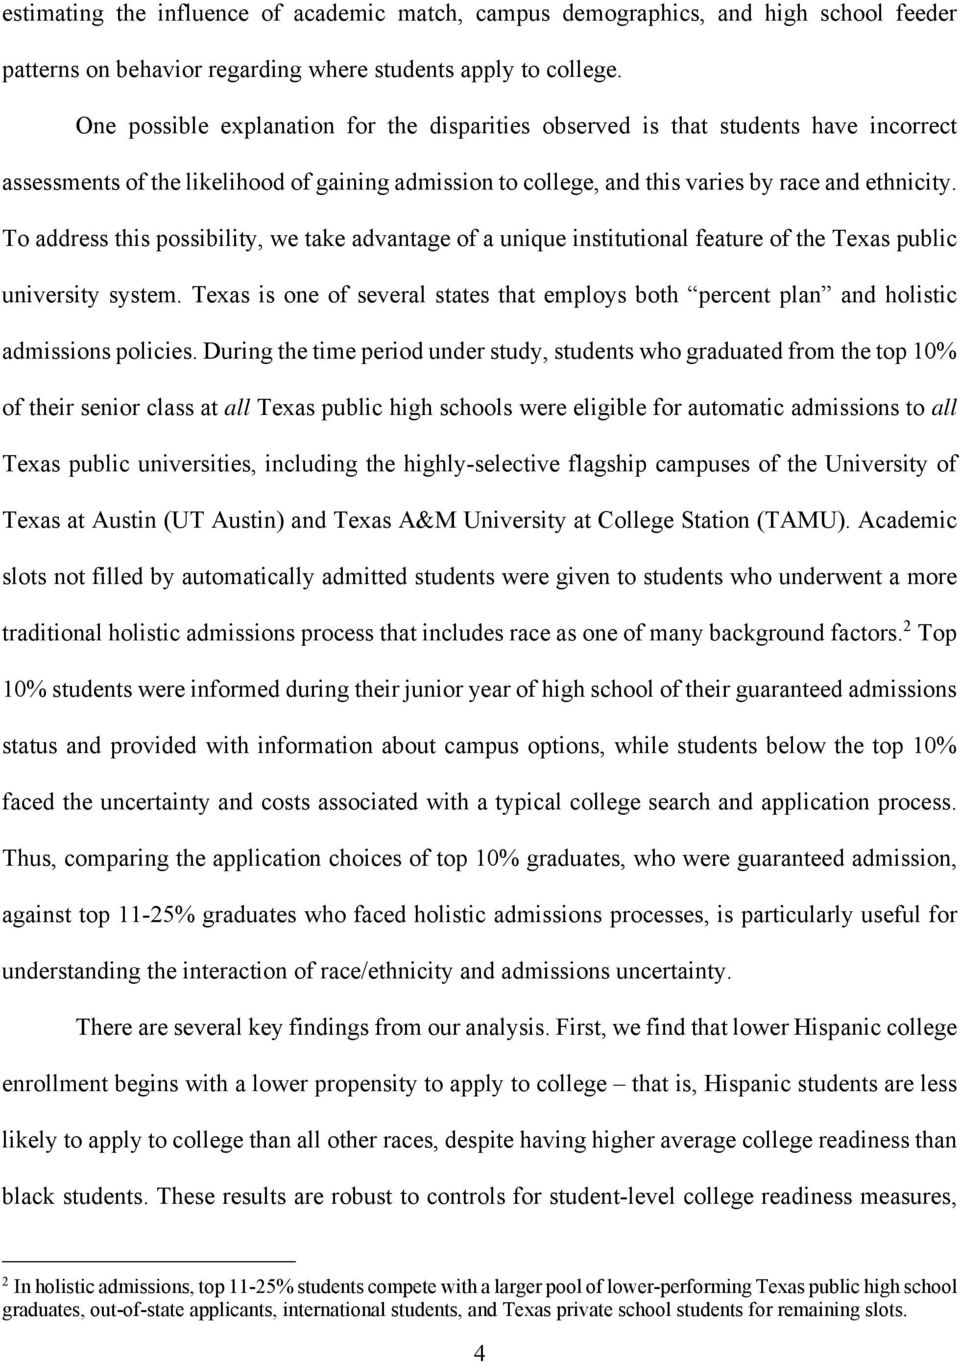 To address this possibility, we take advantage of a unique institutional feature of the Texas public university system.